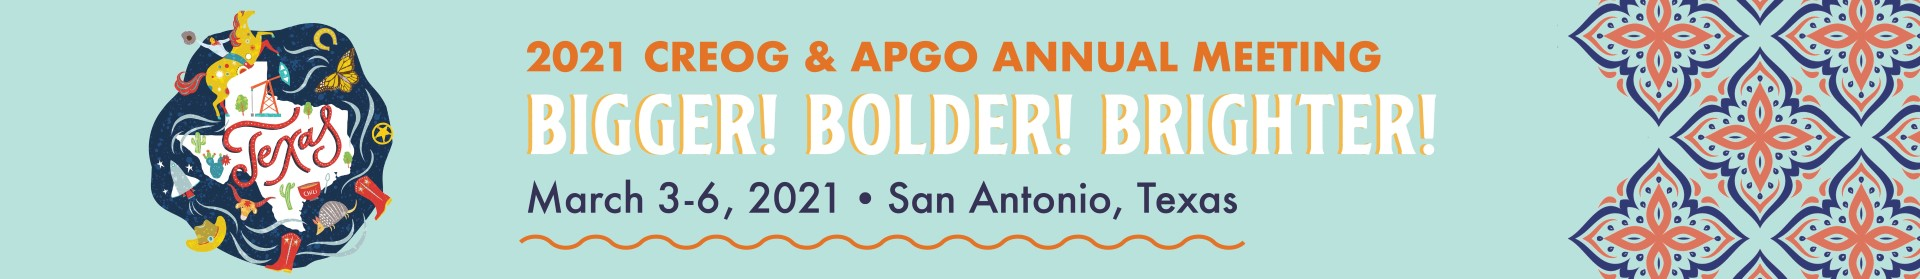 2021 CREOG & APGO Annual Meeting Event Banner